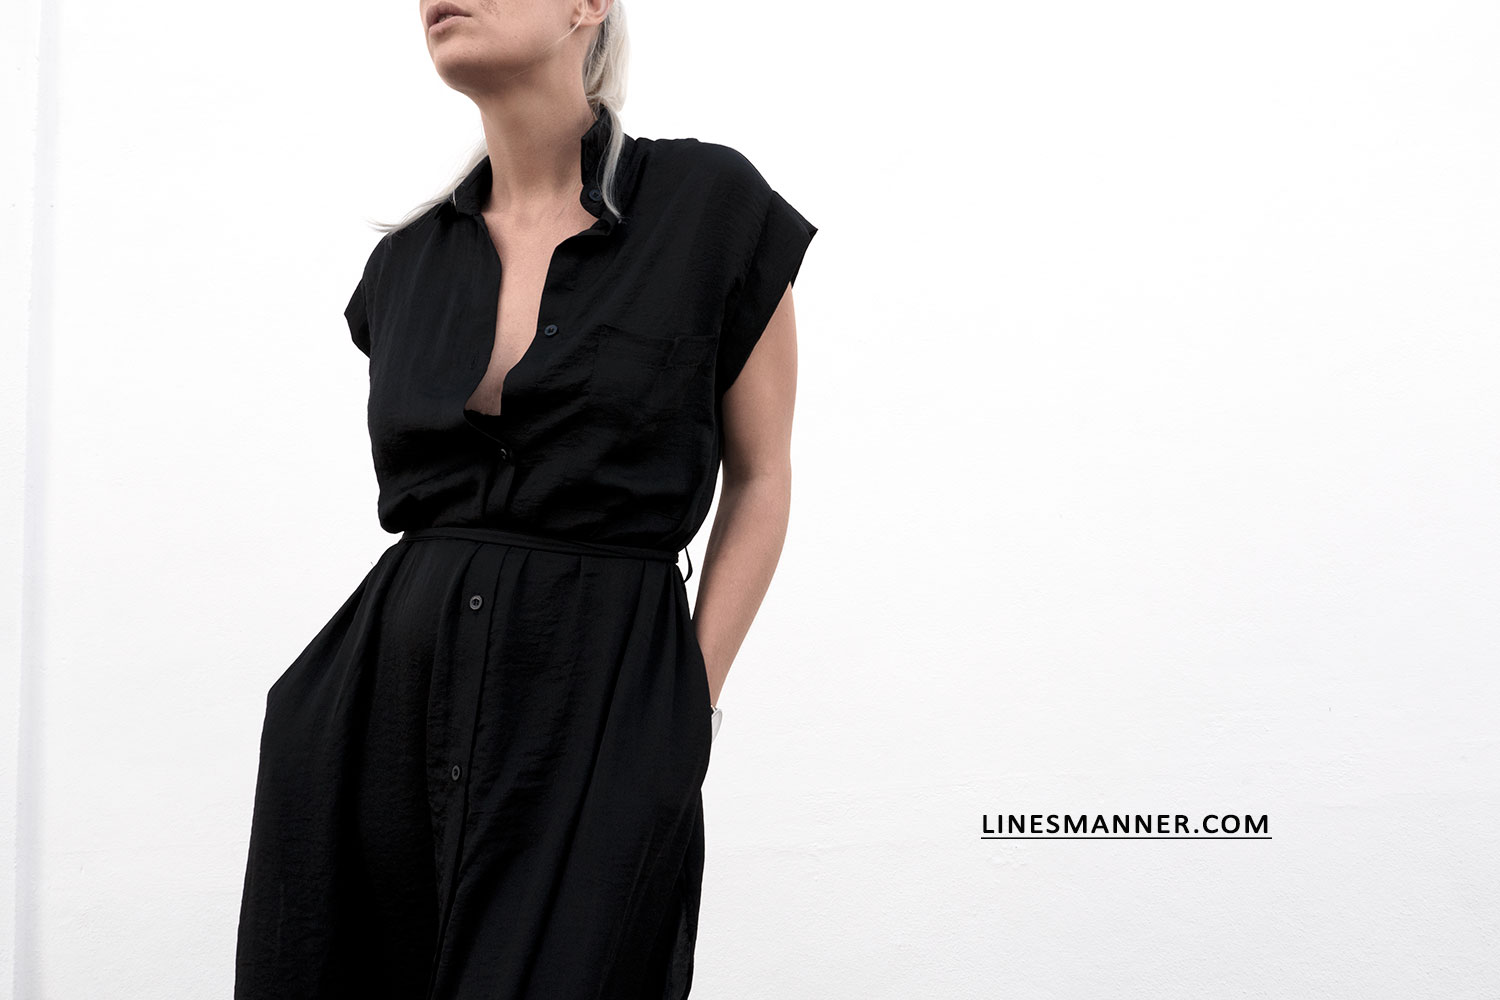 Lines-Manner-All_Black_Everything_Black-MVN-Minimal-Details-Shirt-Dress-Mules-Statement_Piece-Essentials-Throw_On_Piece-21